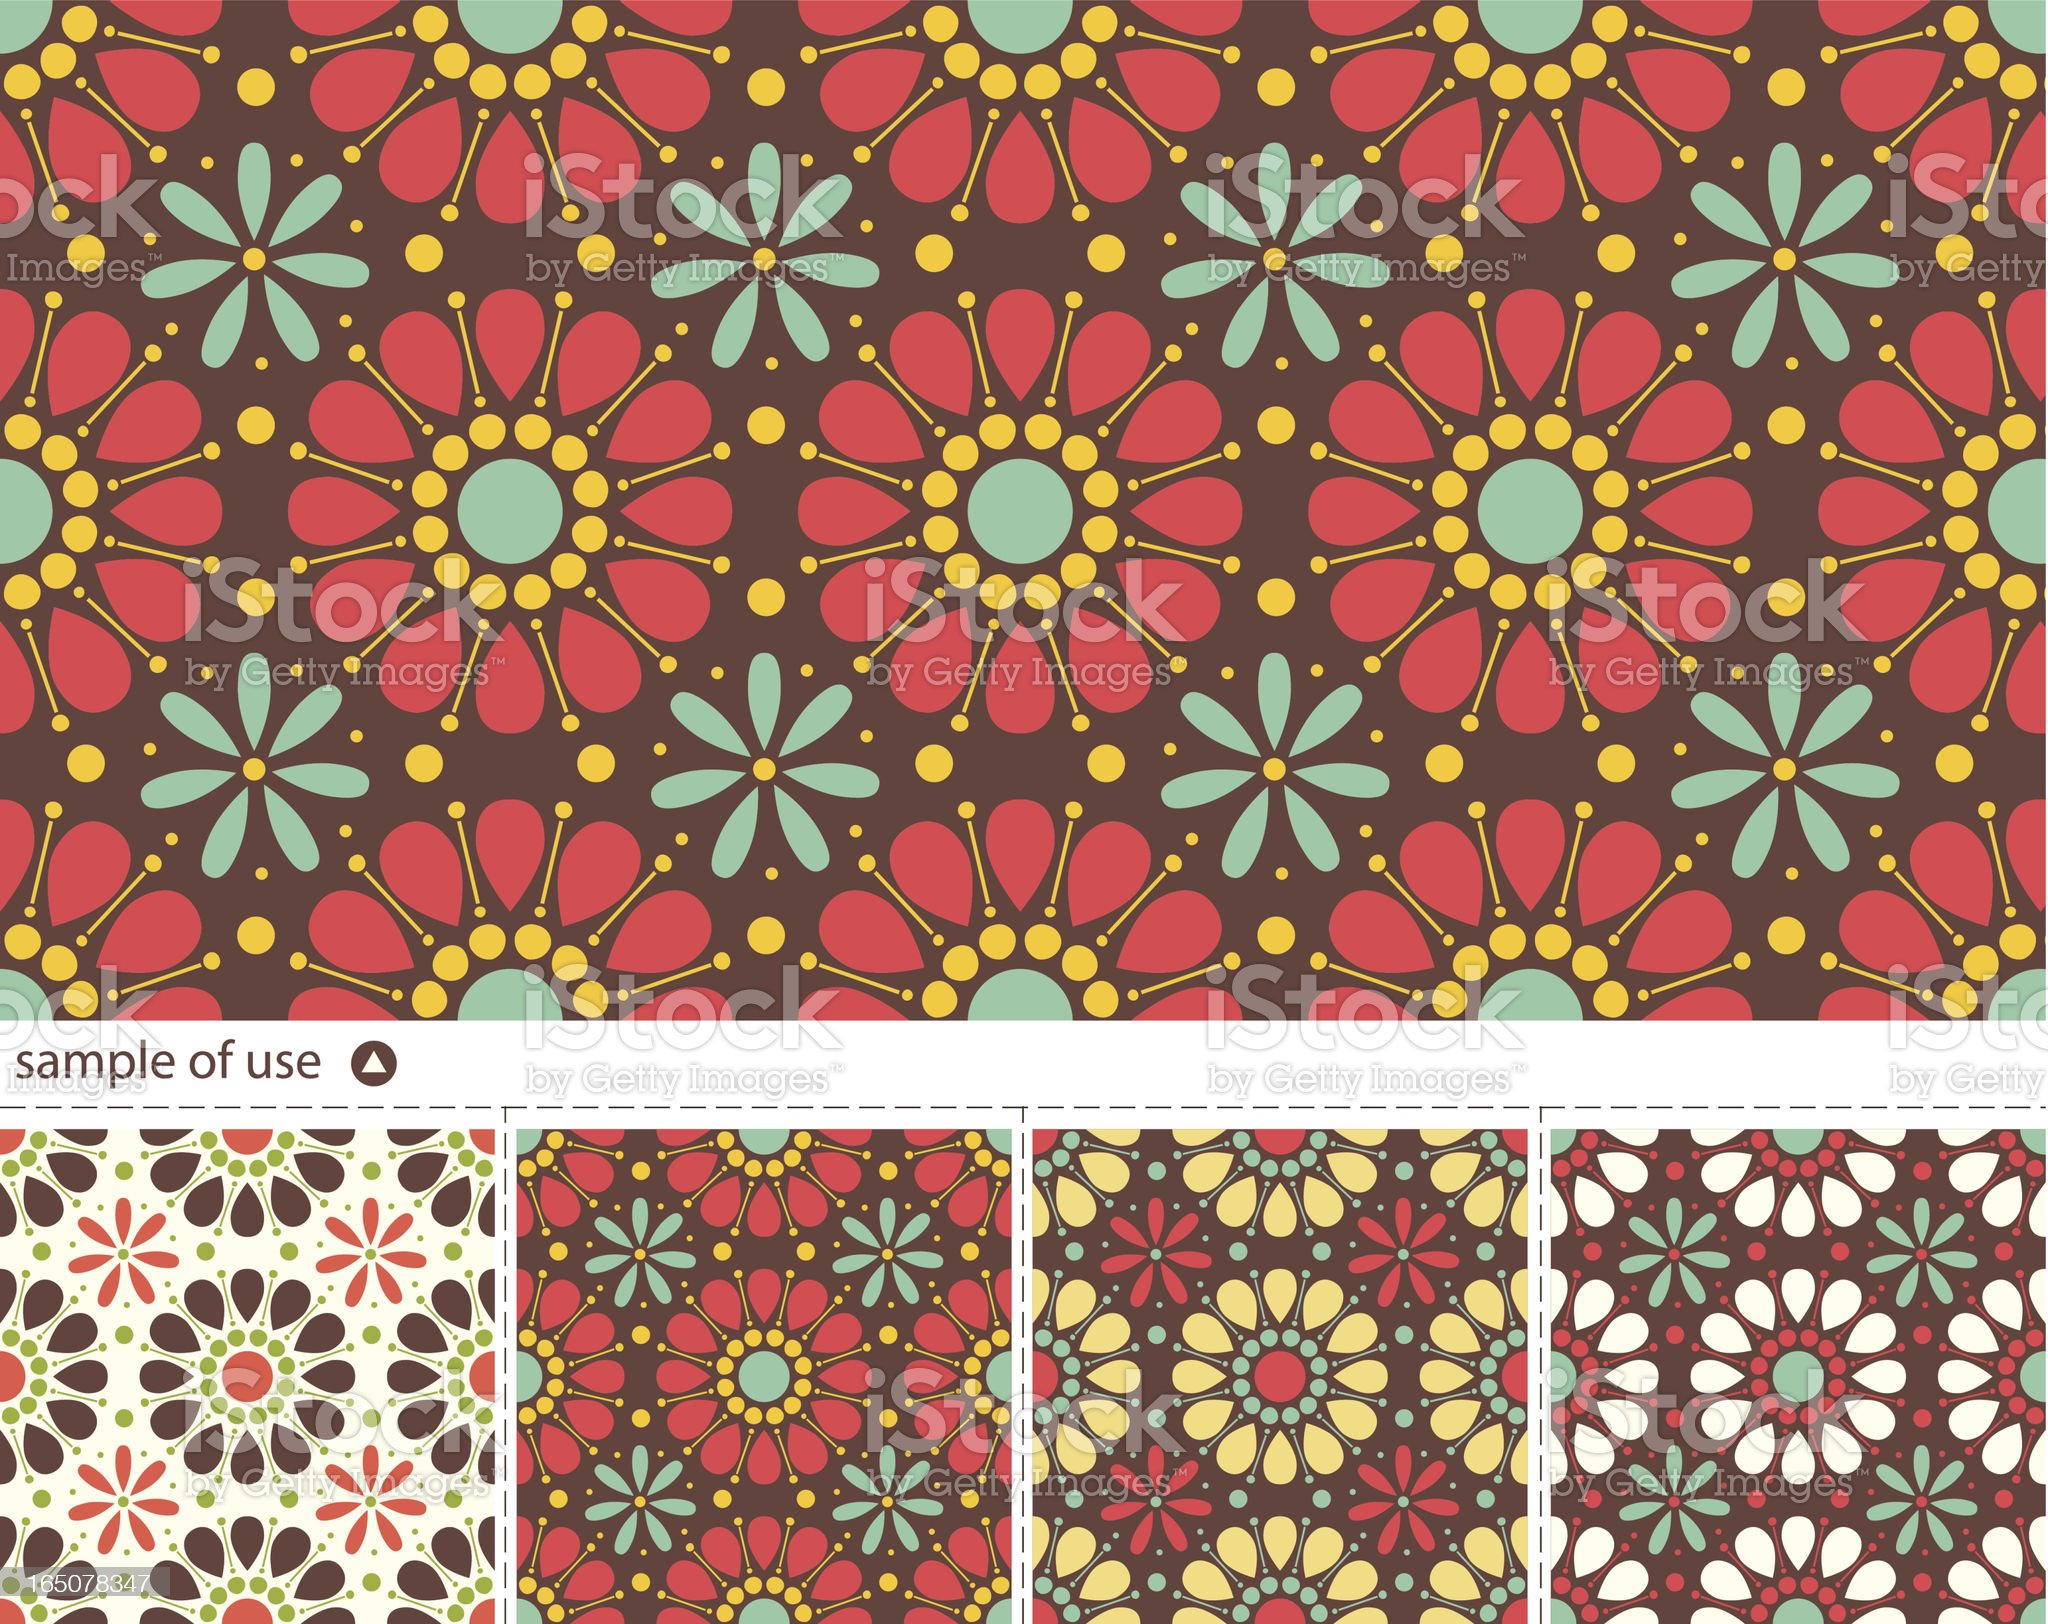 Seamless vector pattern royalty-free stock vector art